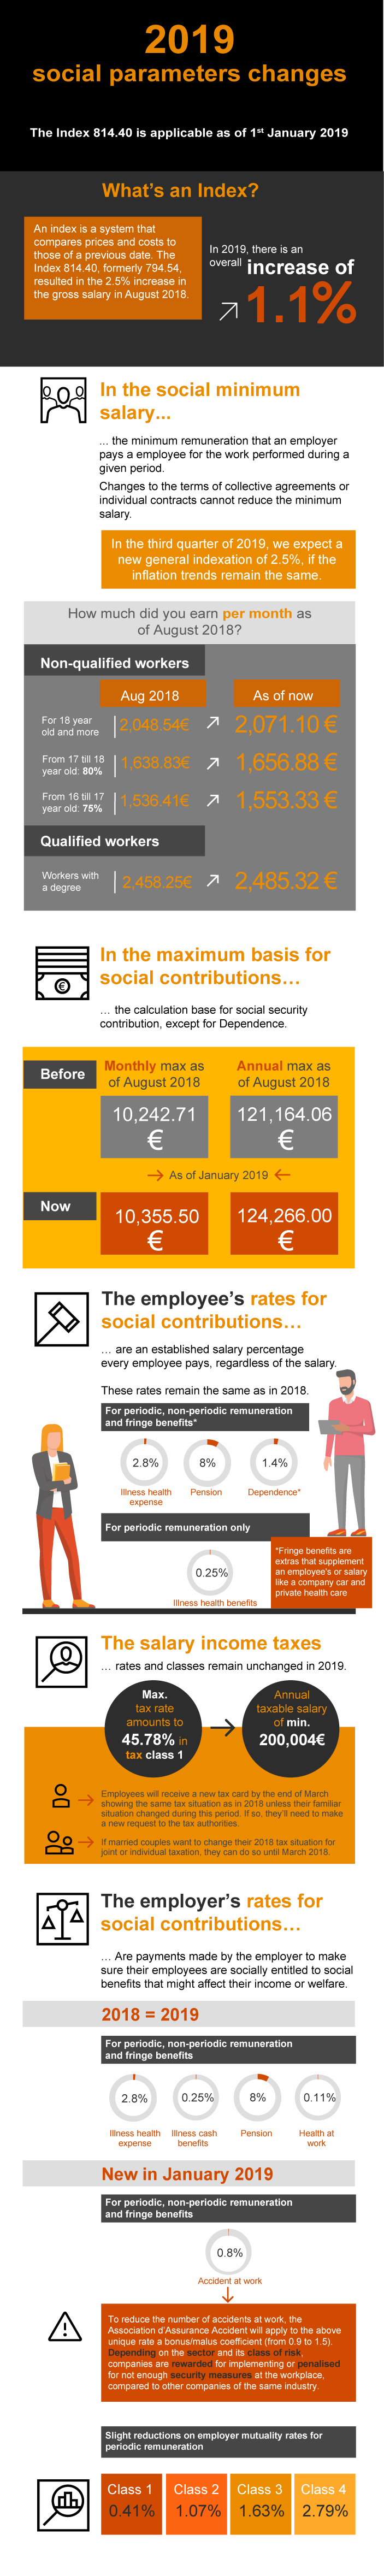 This infographic tells you the 2019 social parameter changes